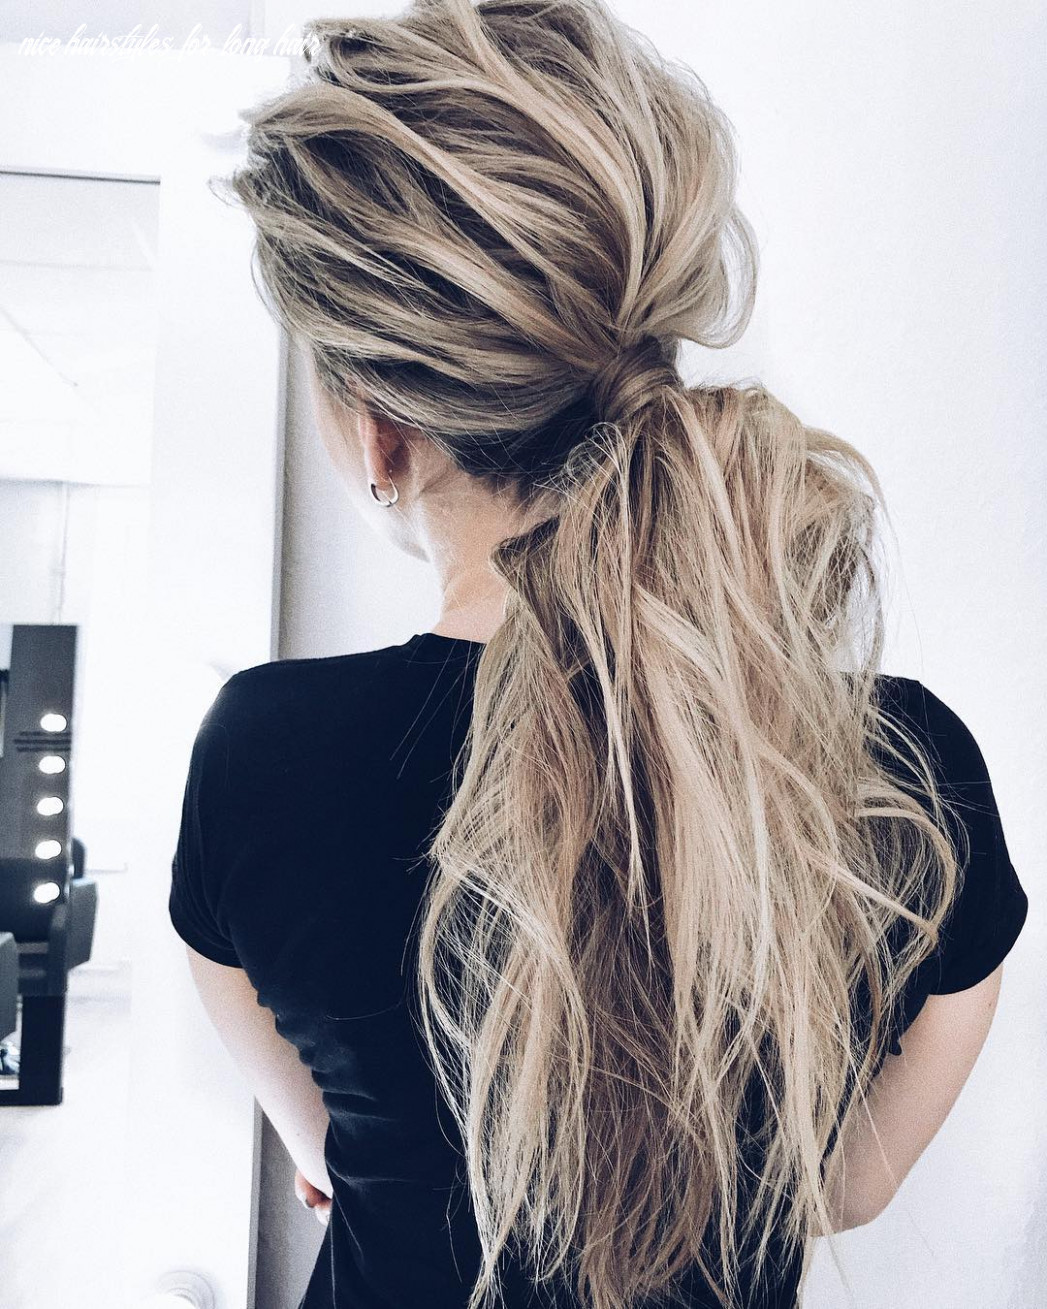 11 Creative Ponytail Hairstyles for Long Hair, Summer Hairstyle ...